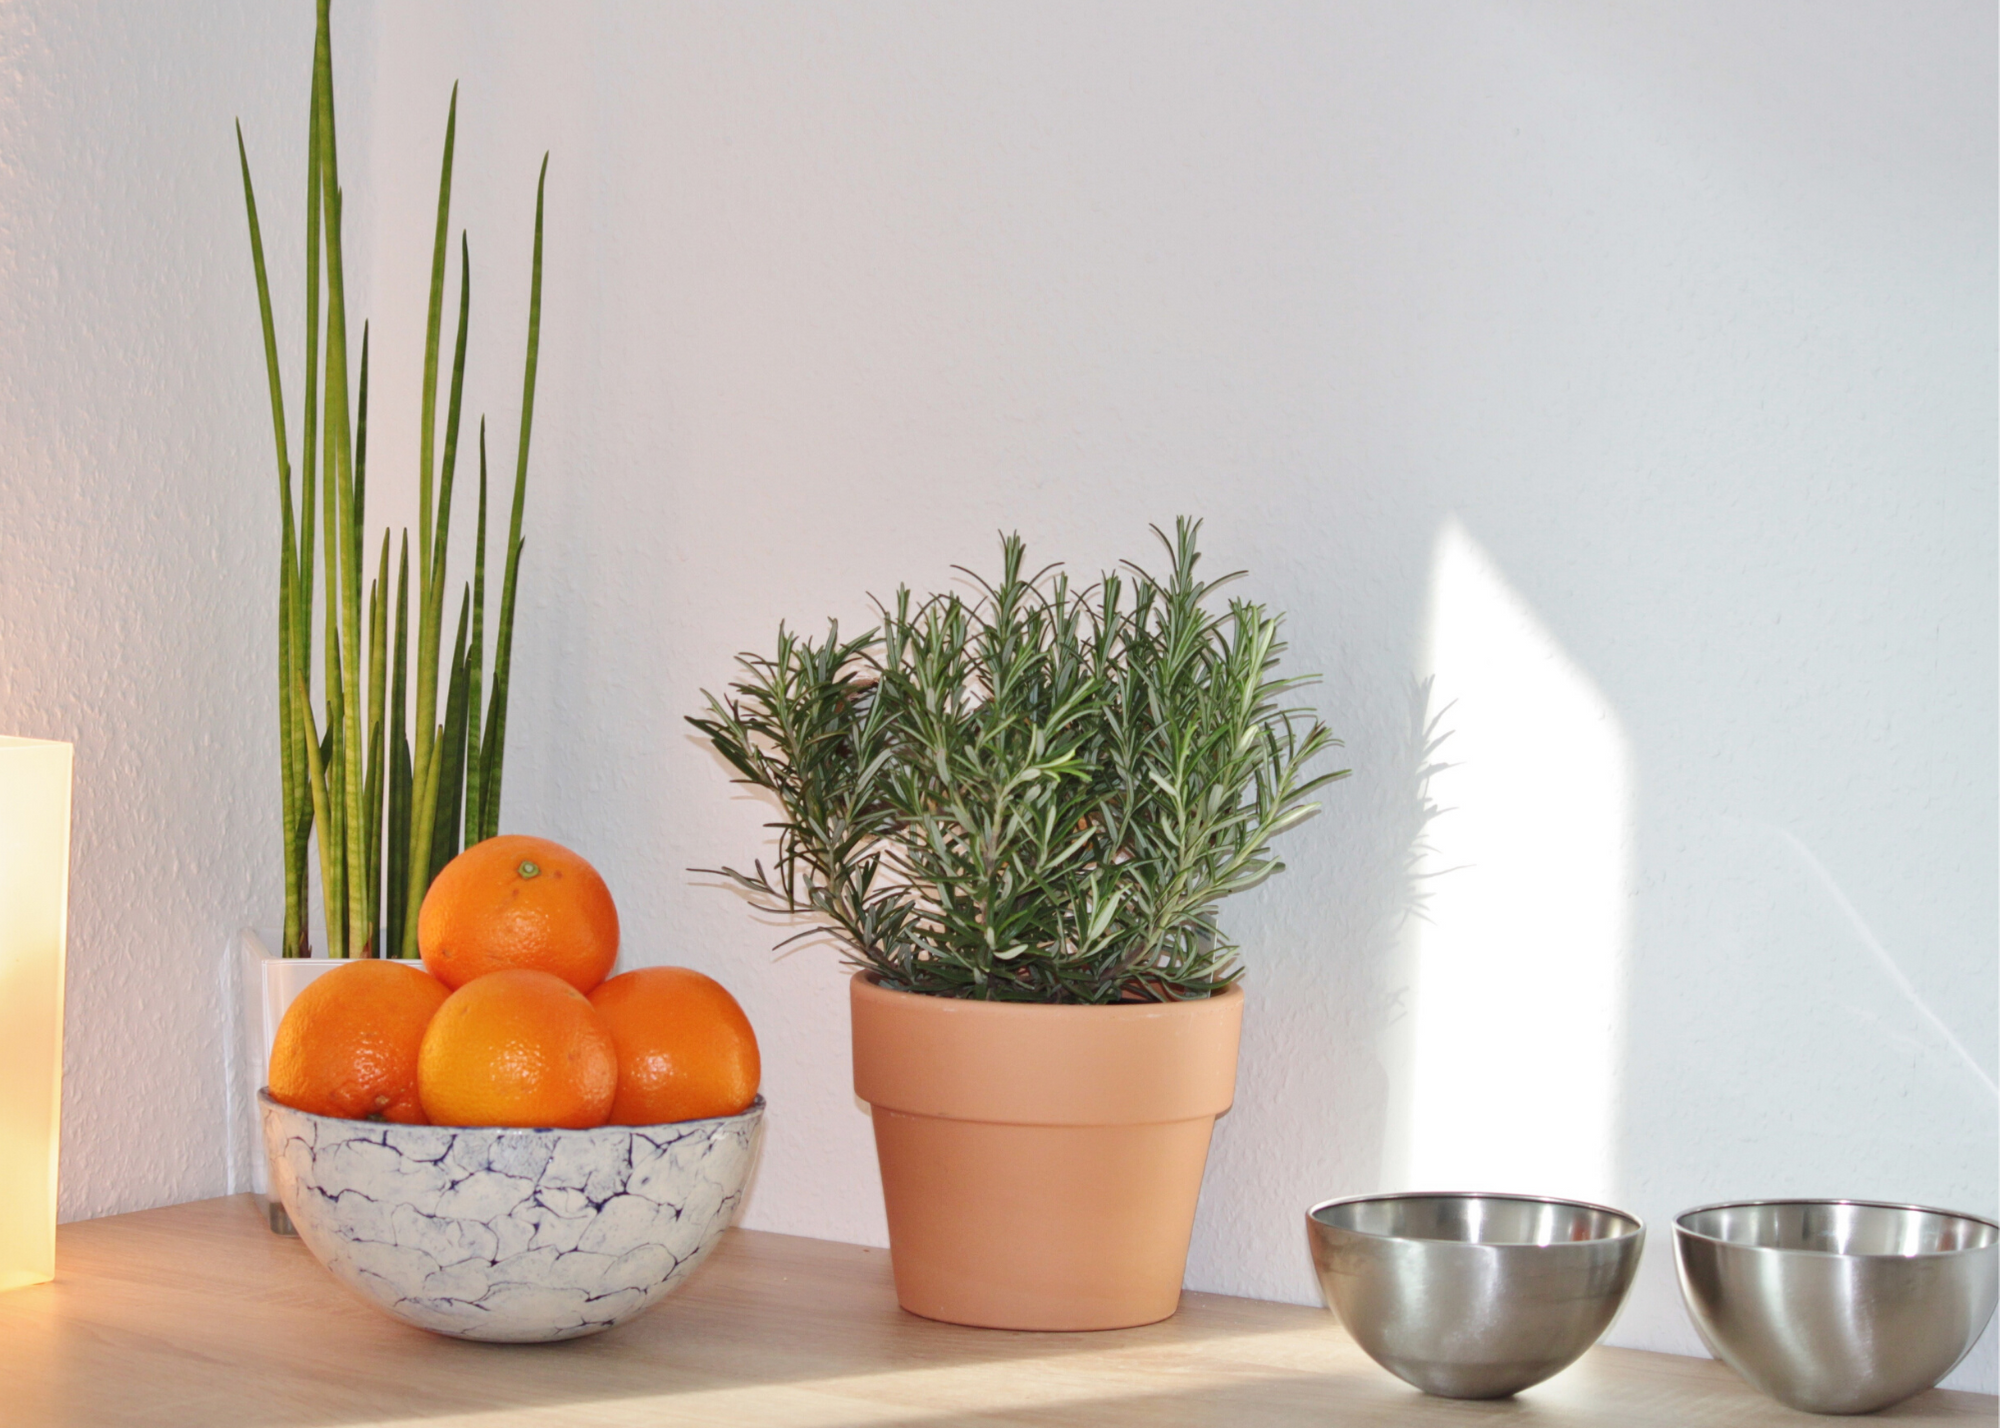 Rosemary and oranges